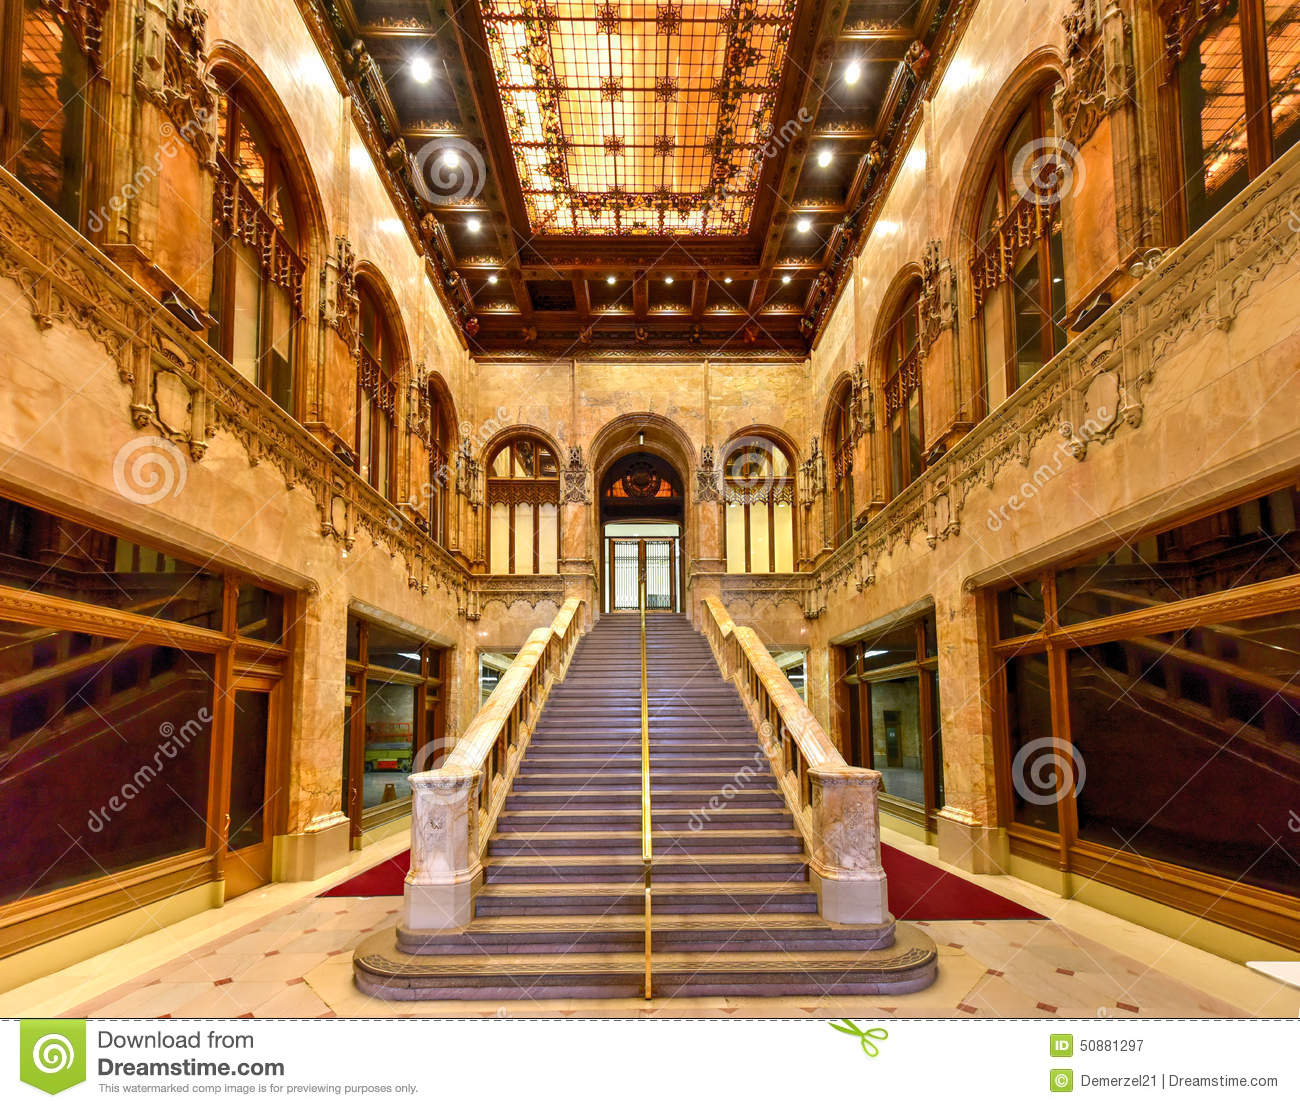 Stock Photo Woolworth Building New York Interior City Usa Was Tallest World Image50881297 on 3d art deco architecture